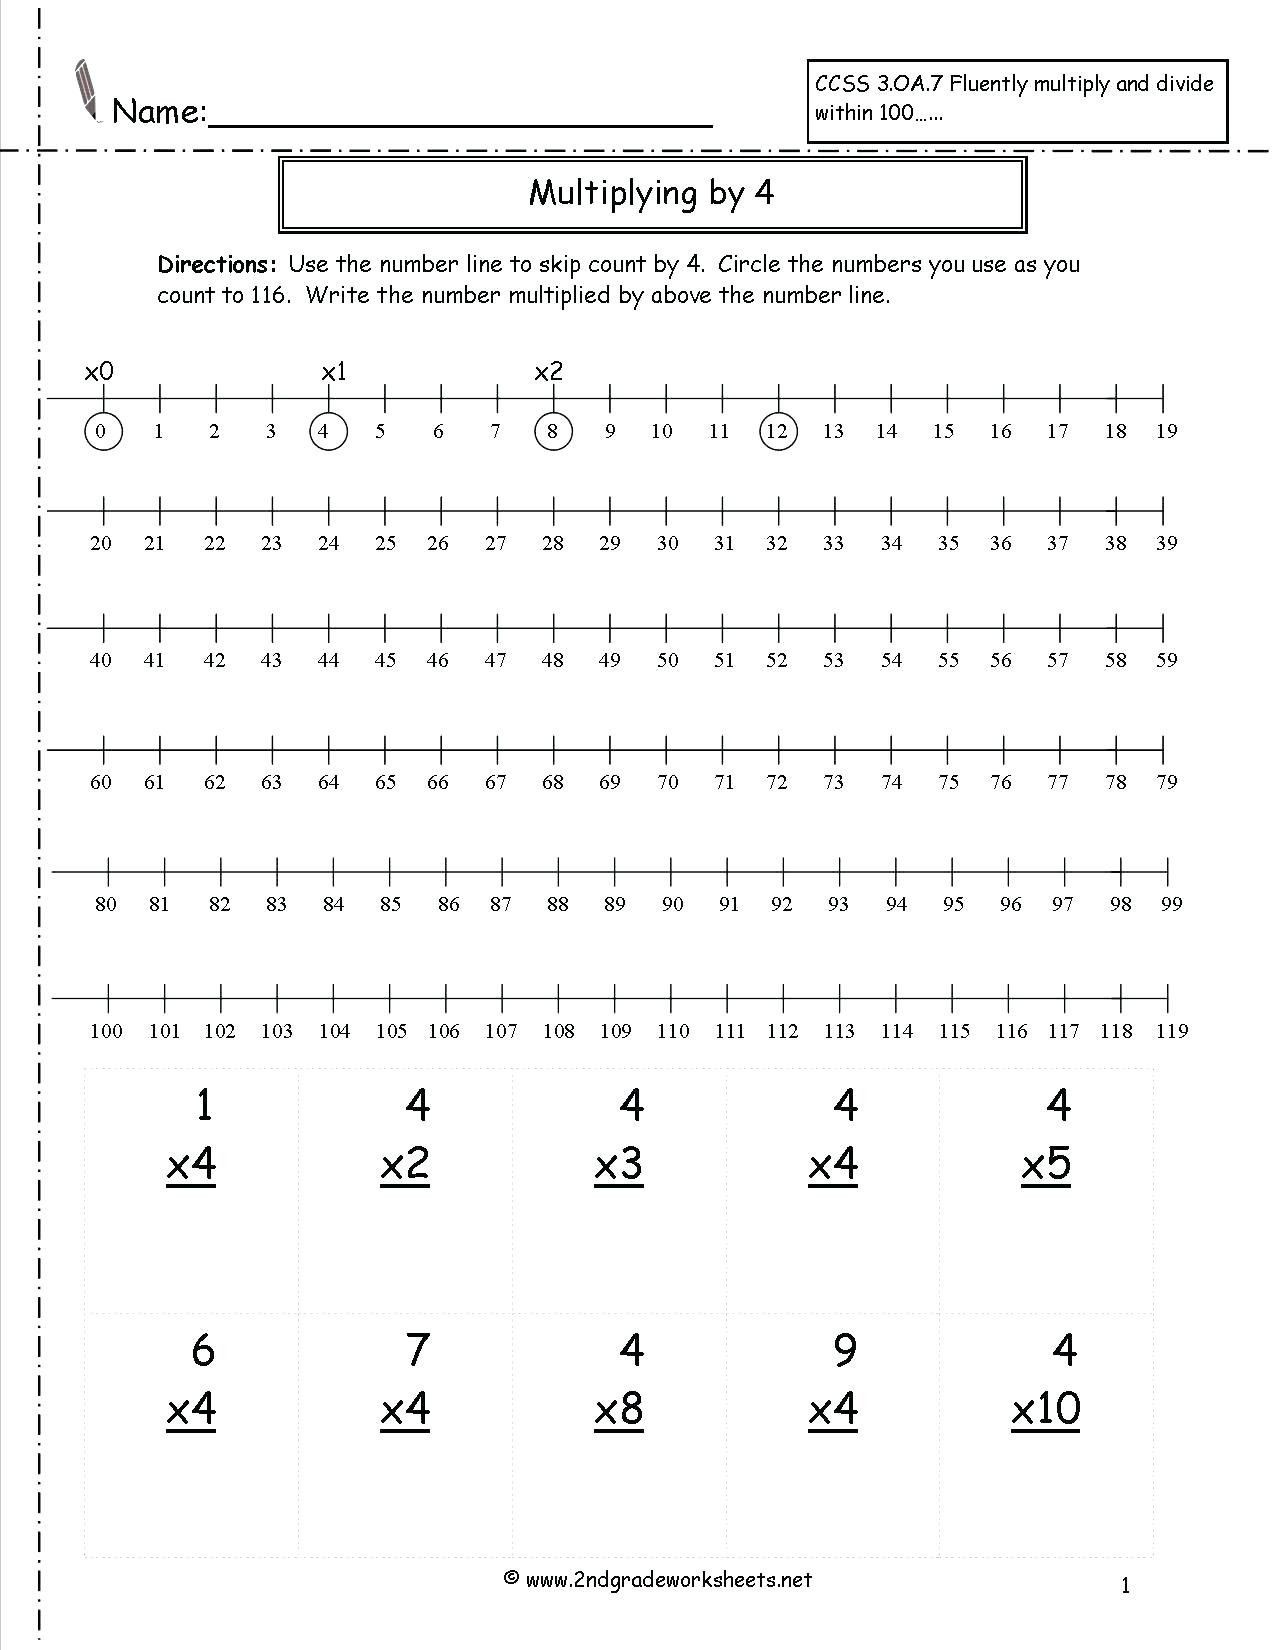 Second Grade Number Line Worksheets 4 Reading Prehension Worksheets Second Grade 2